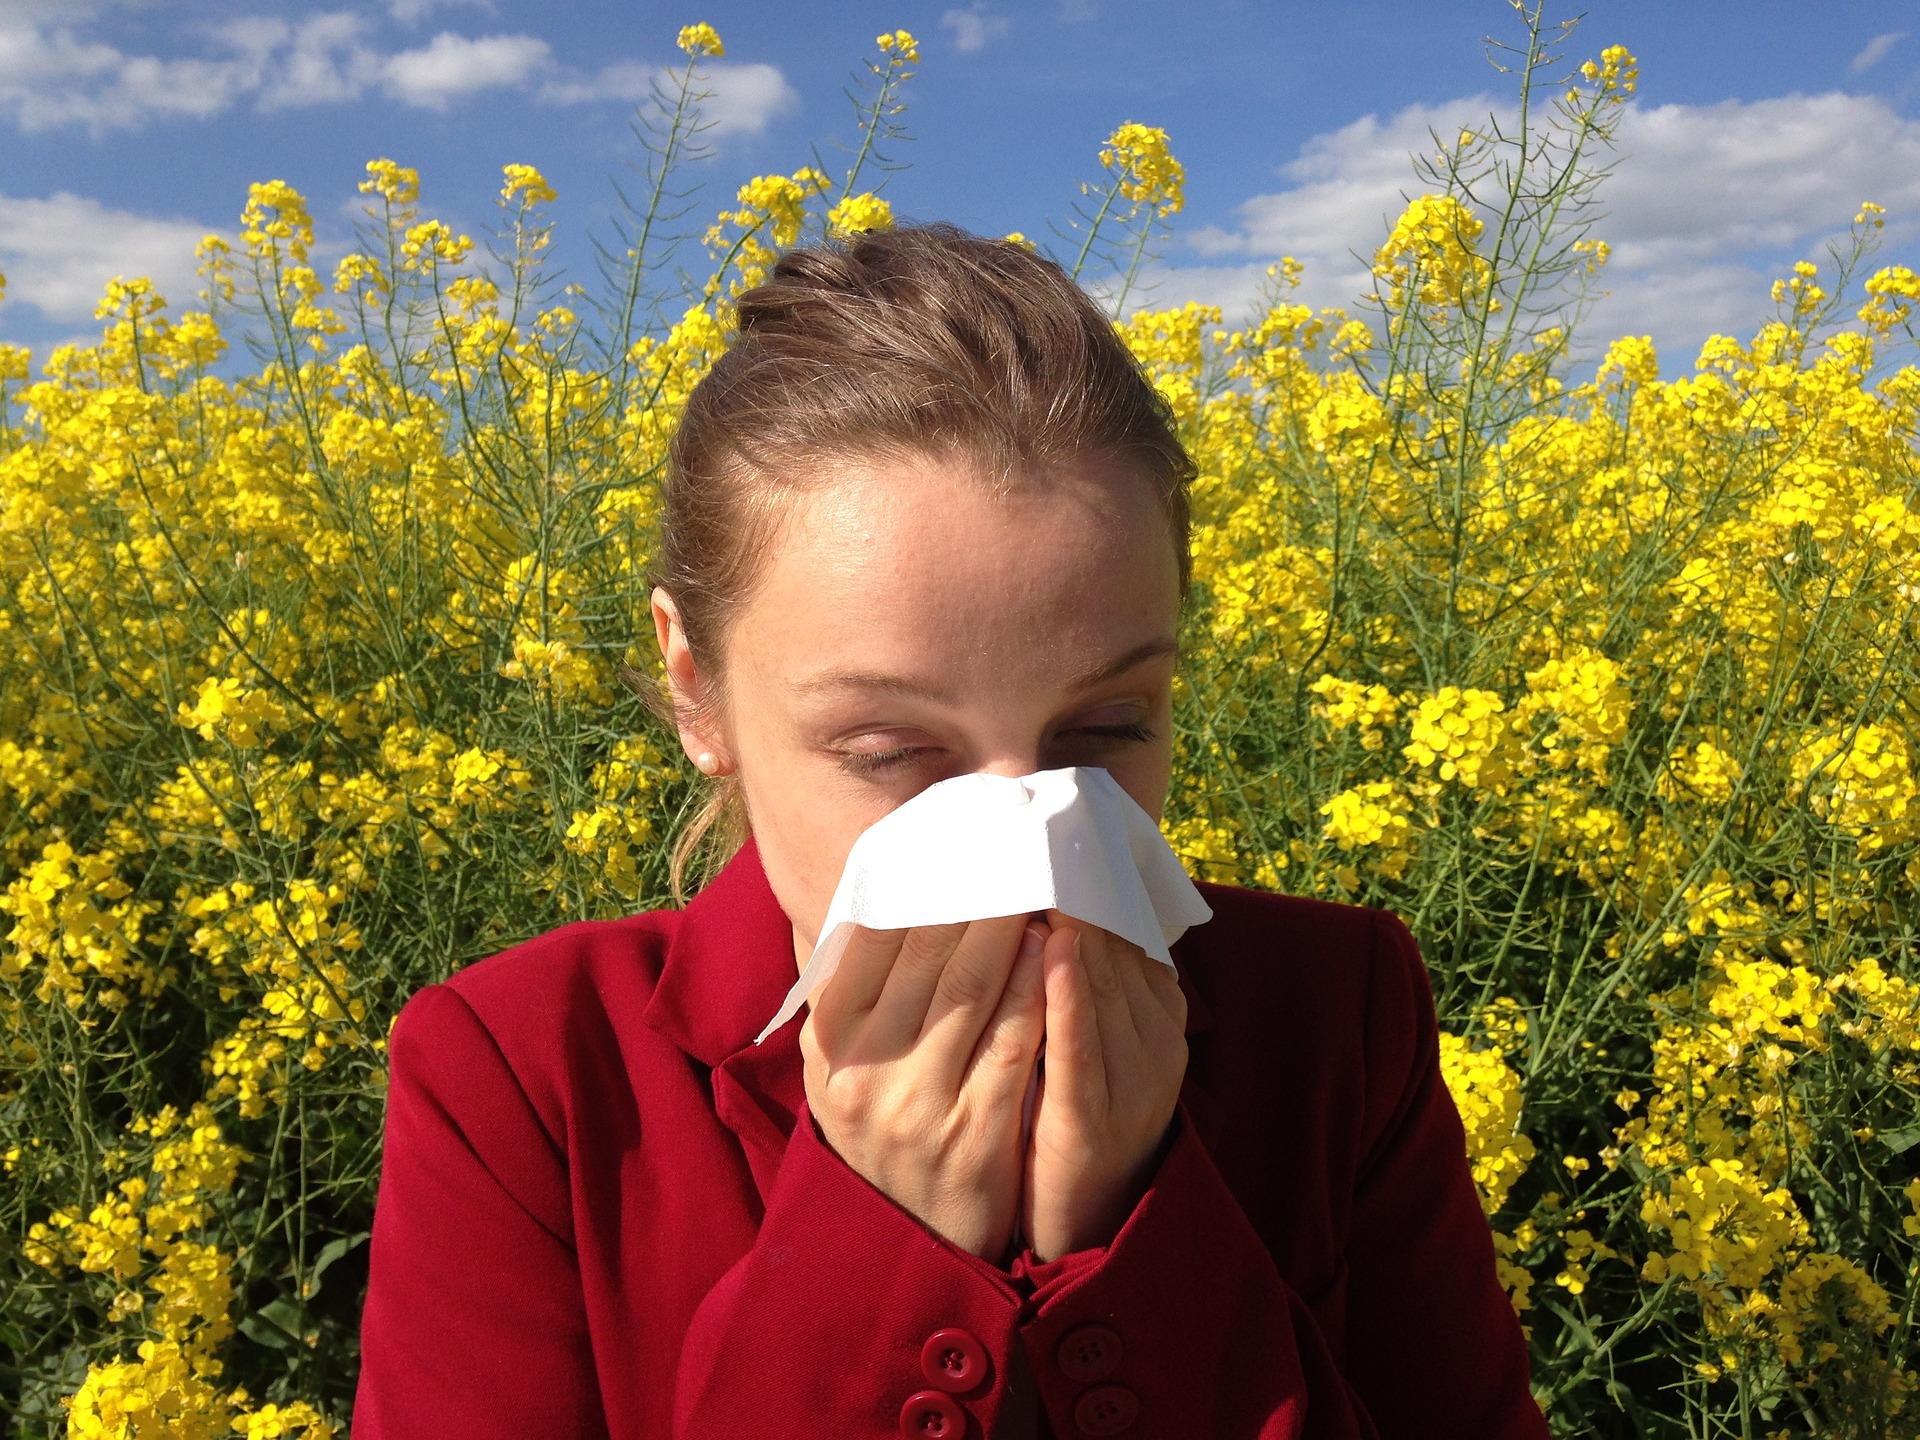 girl cough because of allergy